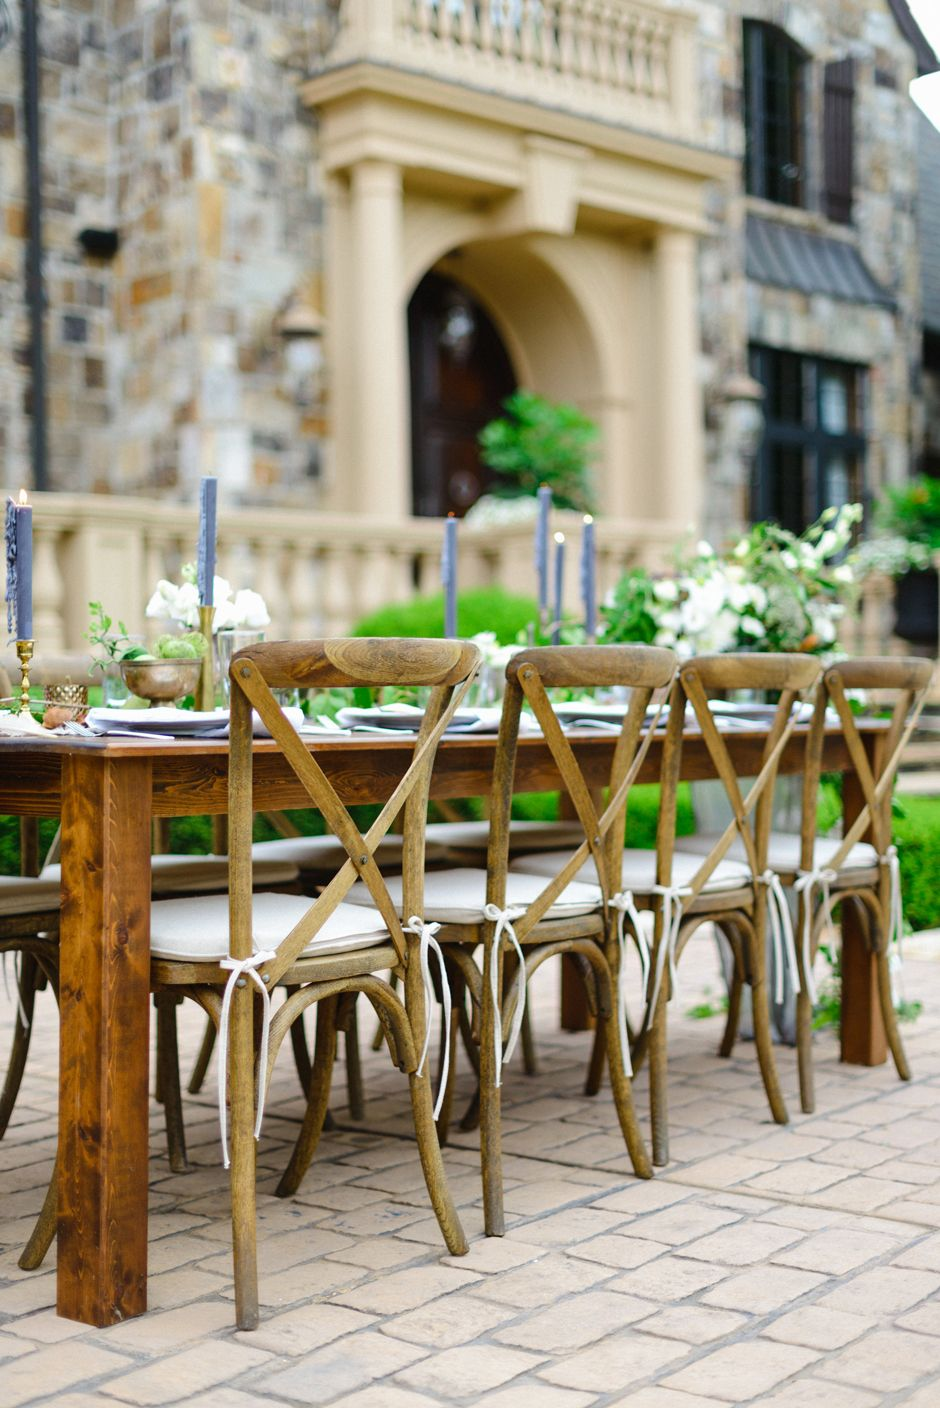 Crossback Vineyard Chair Rental in Atlanta, Athens, Lake Oconee | Georgia  Wedding Chair Rentals - Crossback Vineyard Chair Rental In Atlanta, Athens, Lake Oconee